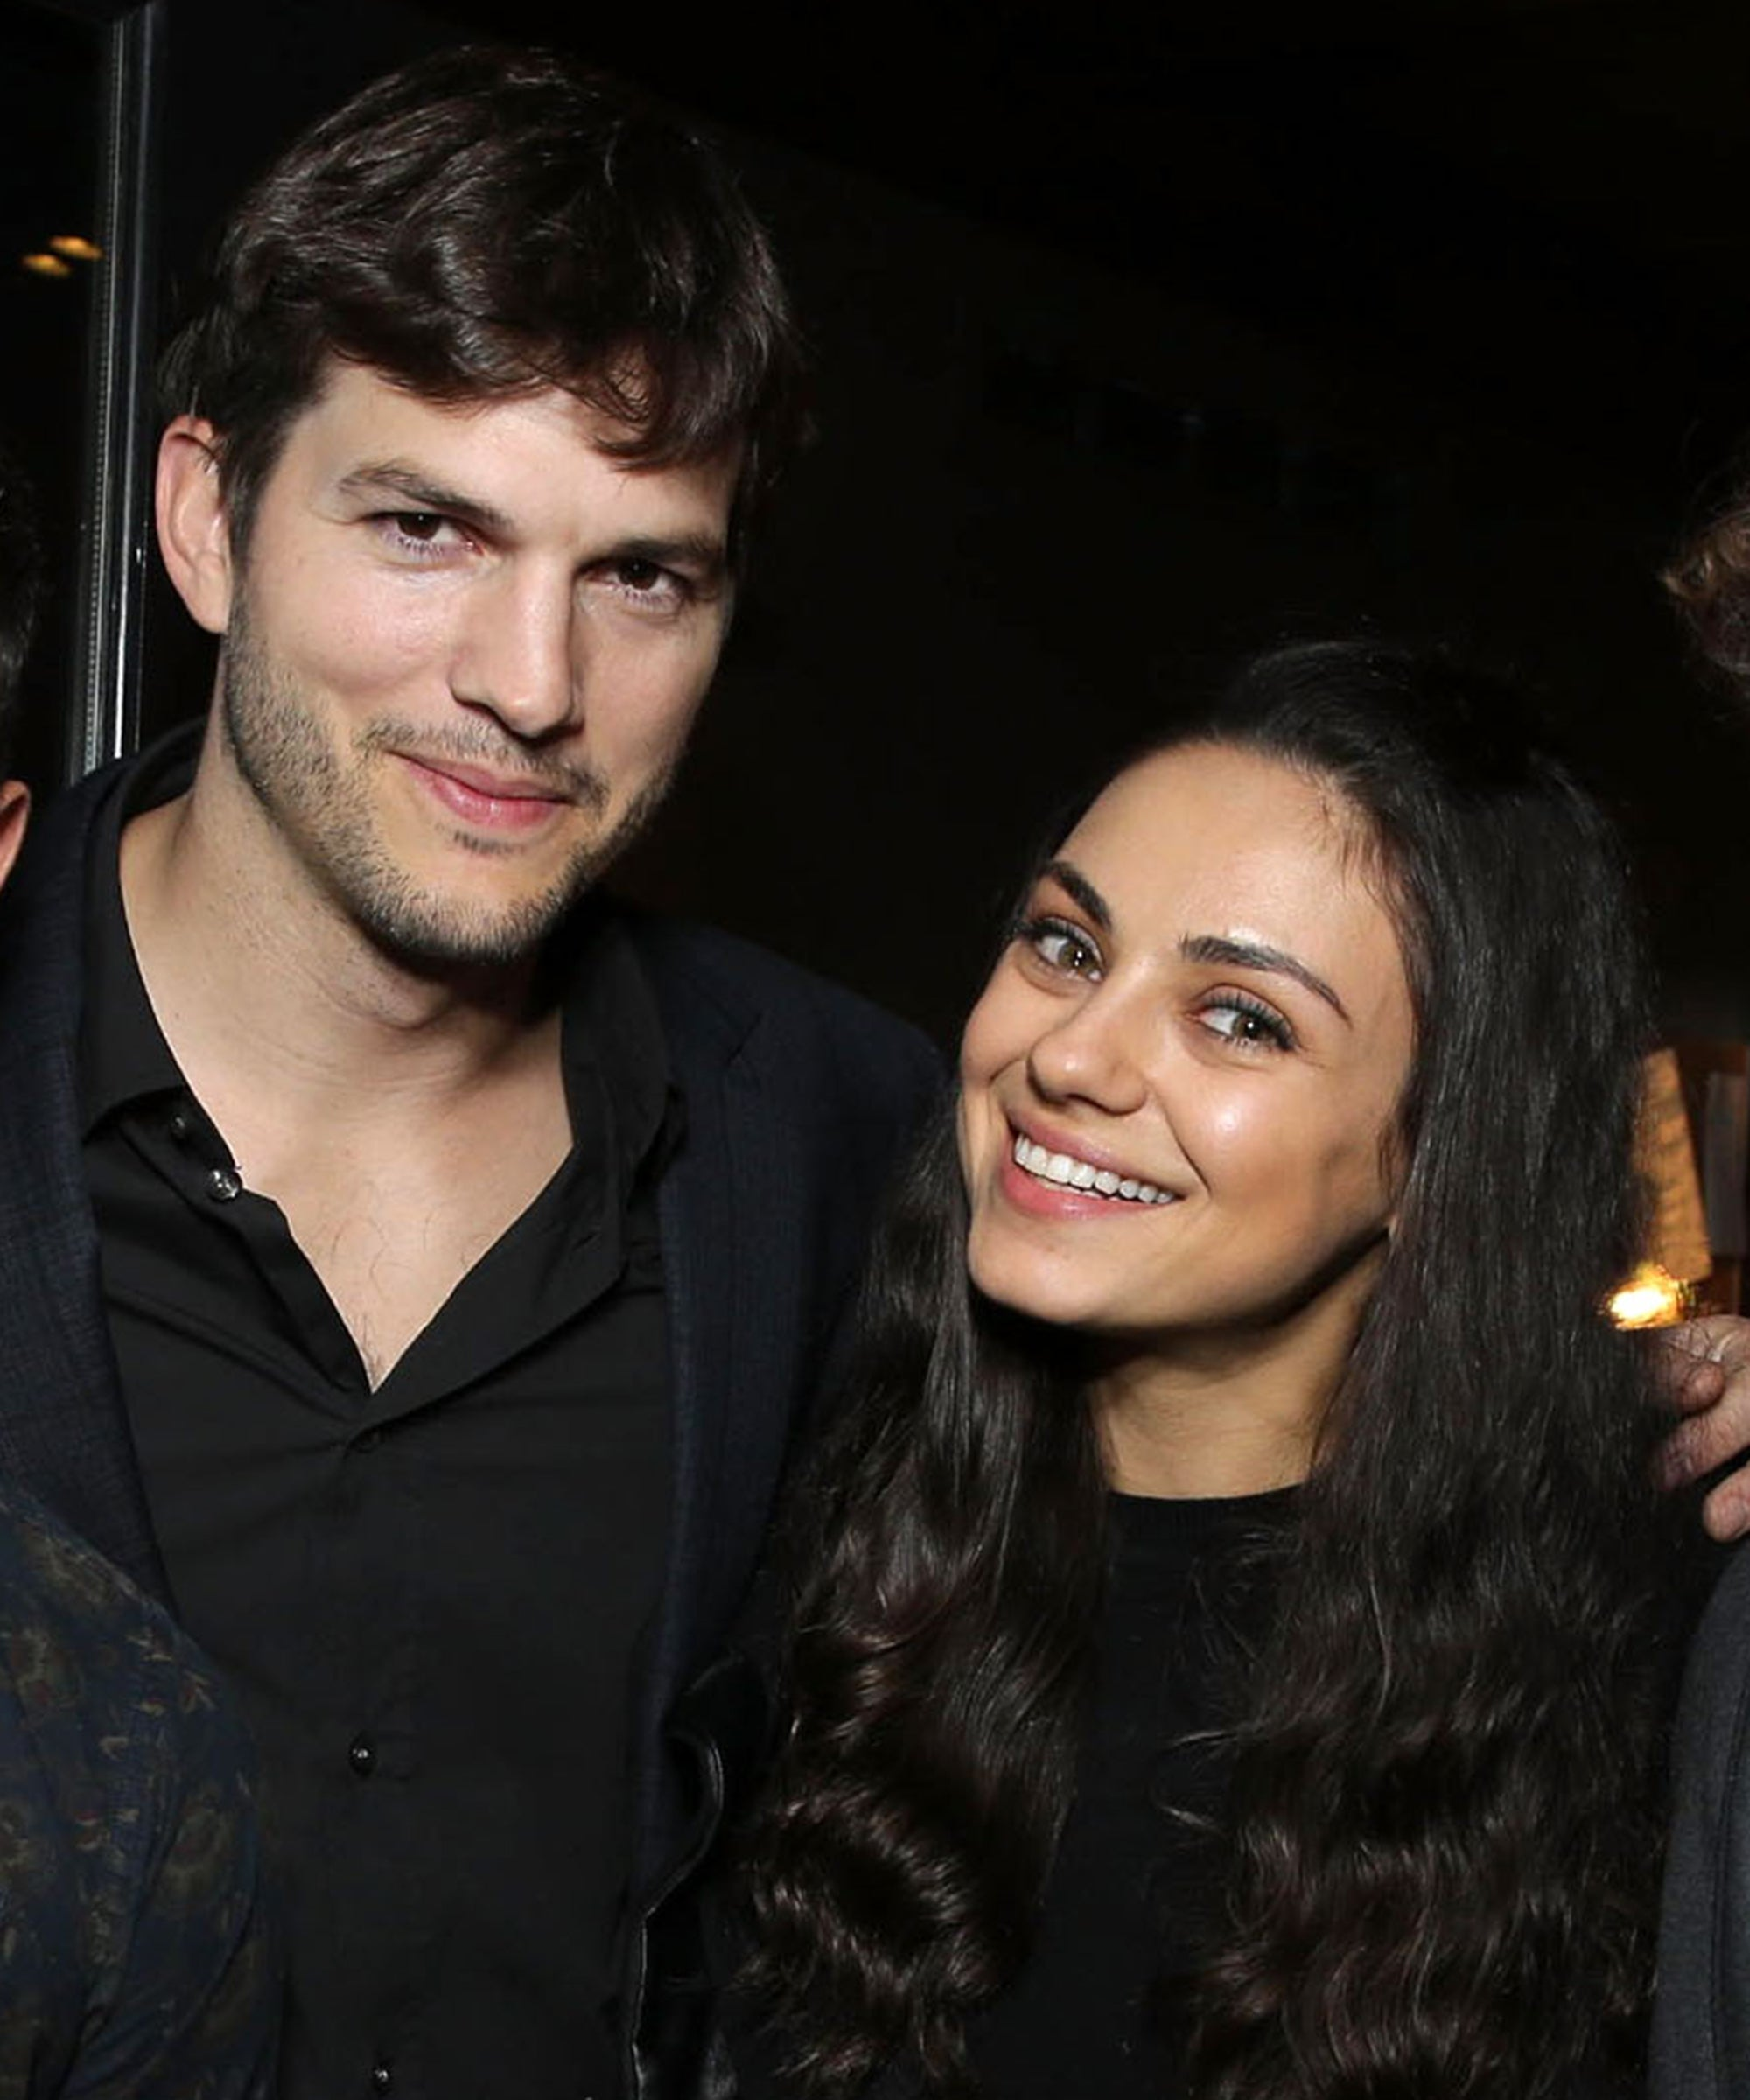 Ashton Kutcher Reacts To Mila Kunis On Real Housewives